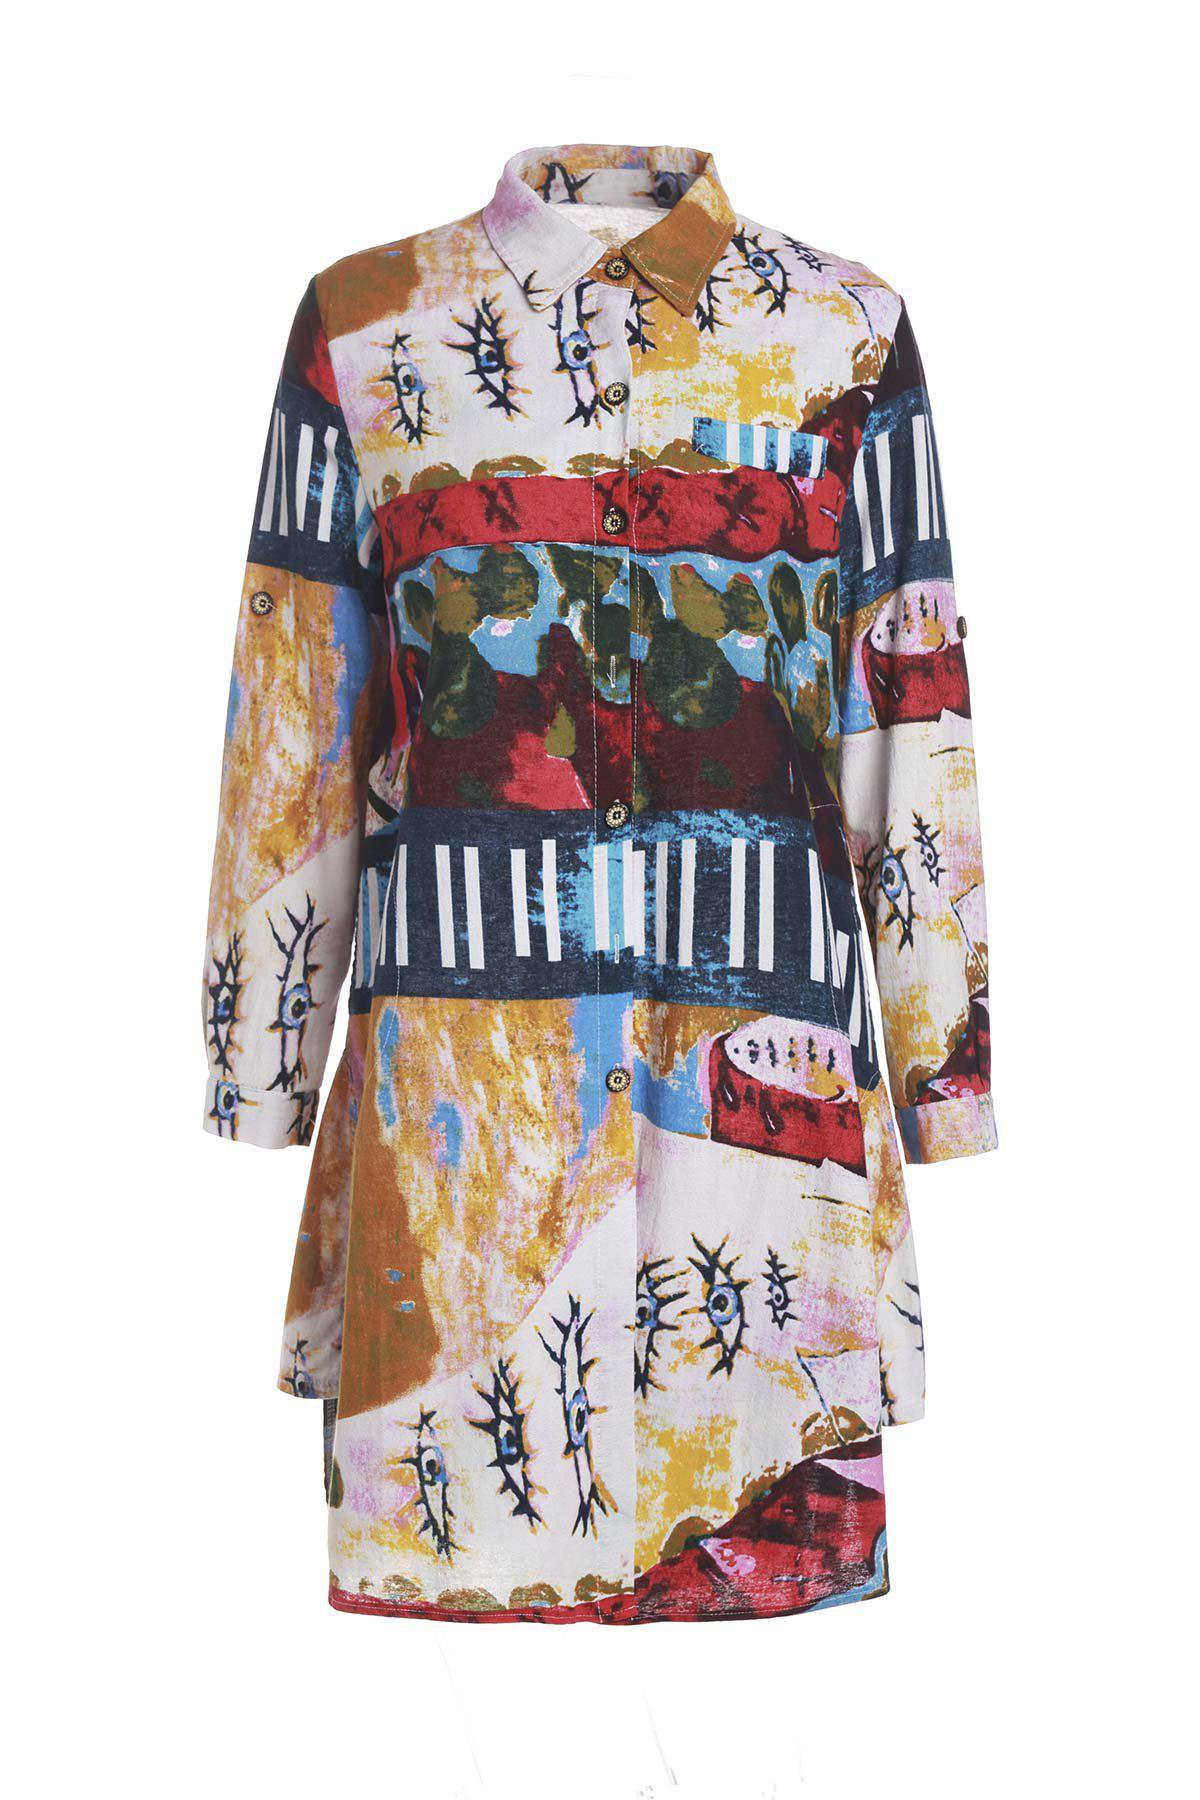 Vintage Style Shirt Collar Long Sleeve Loose-Fitting Colorful Print Women's Shirt